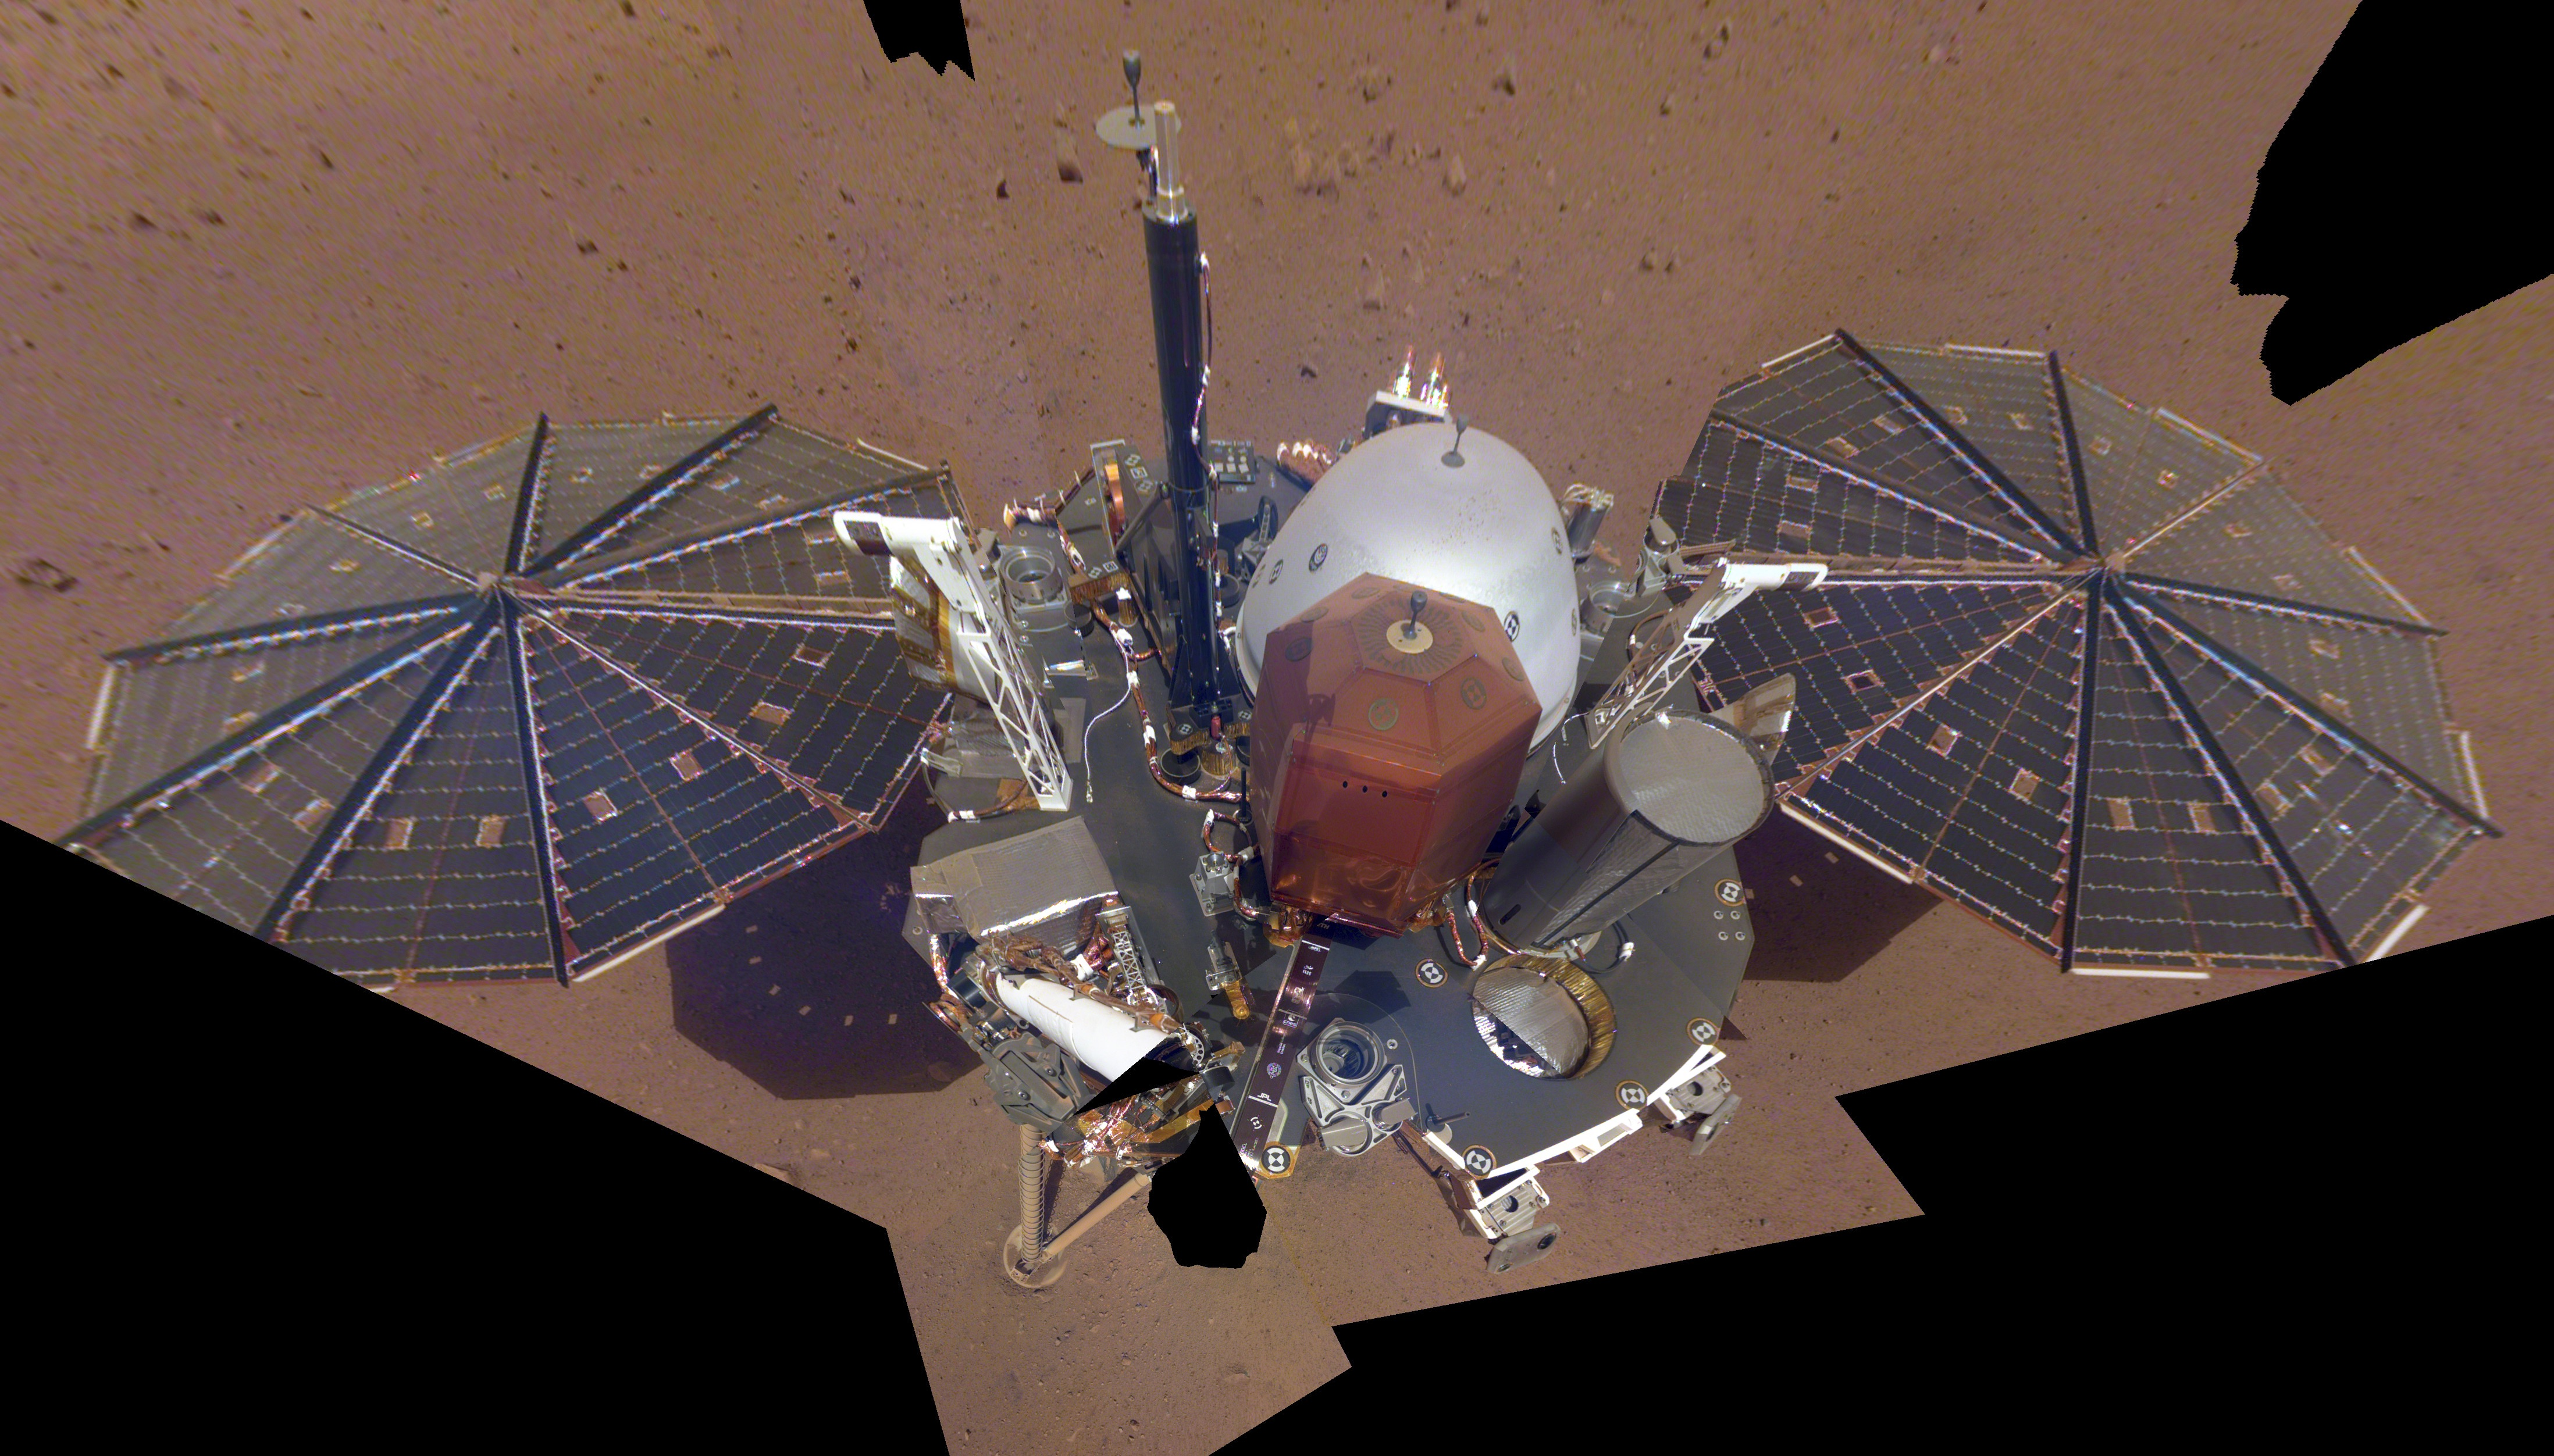 Although dozens of spacecraft have explored Mars' surface, InSight is the first to target the planet's interior.